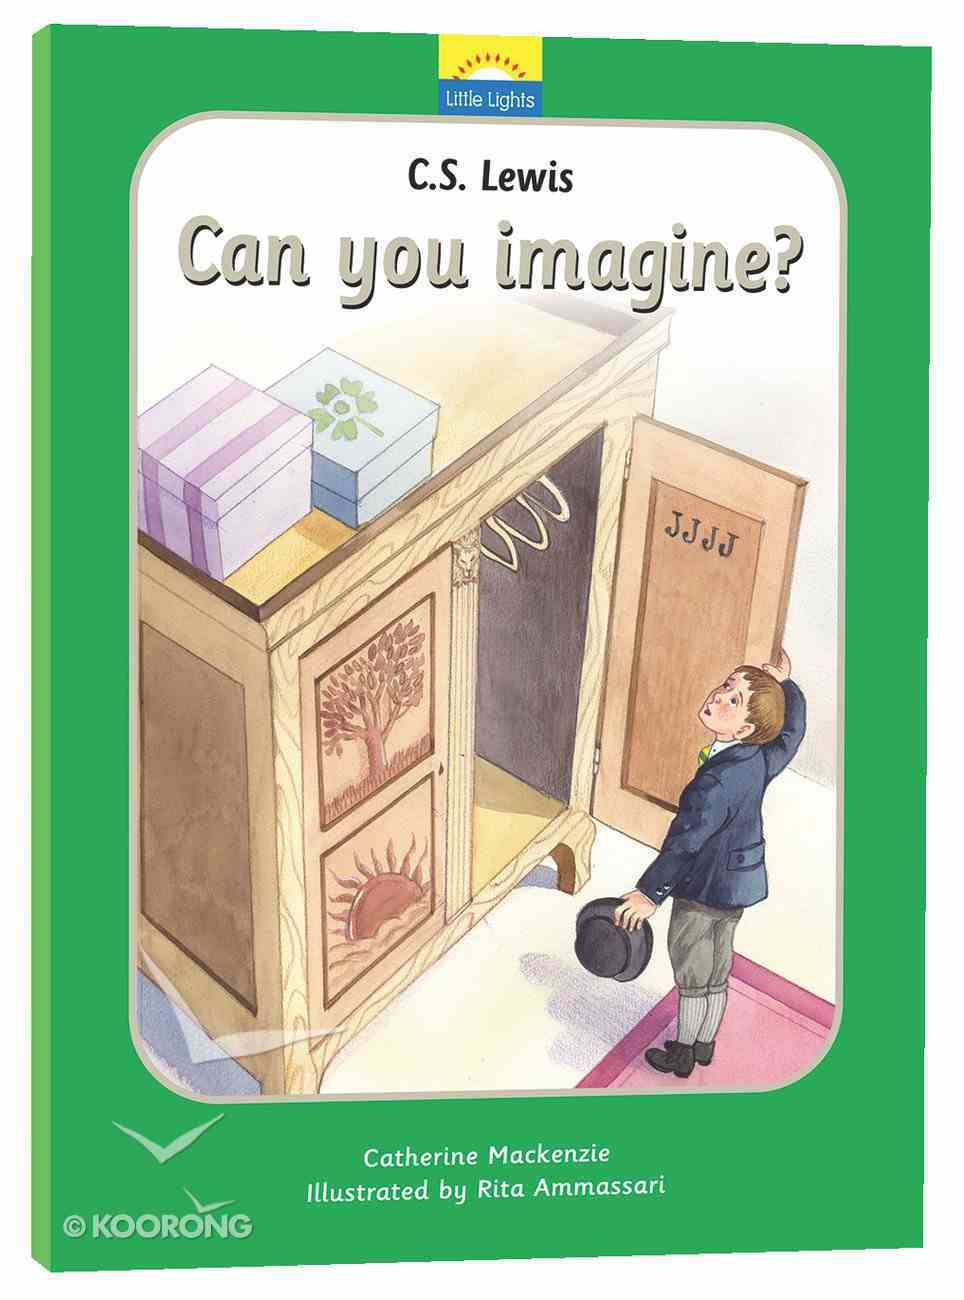 C.S.Lewis - Can You Imagine? (Little Lights Biography Series) Hardback